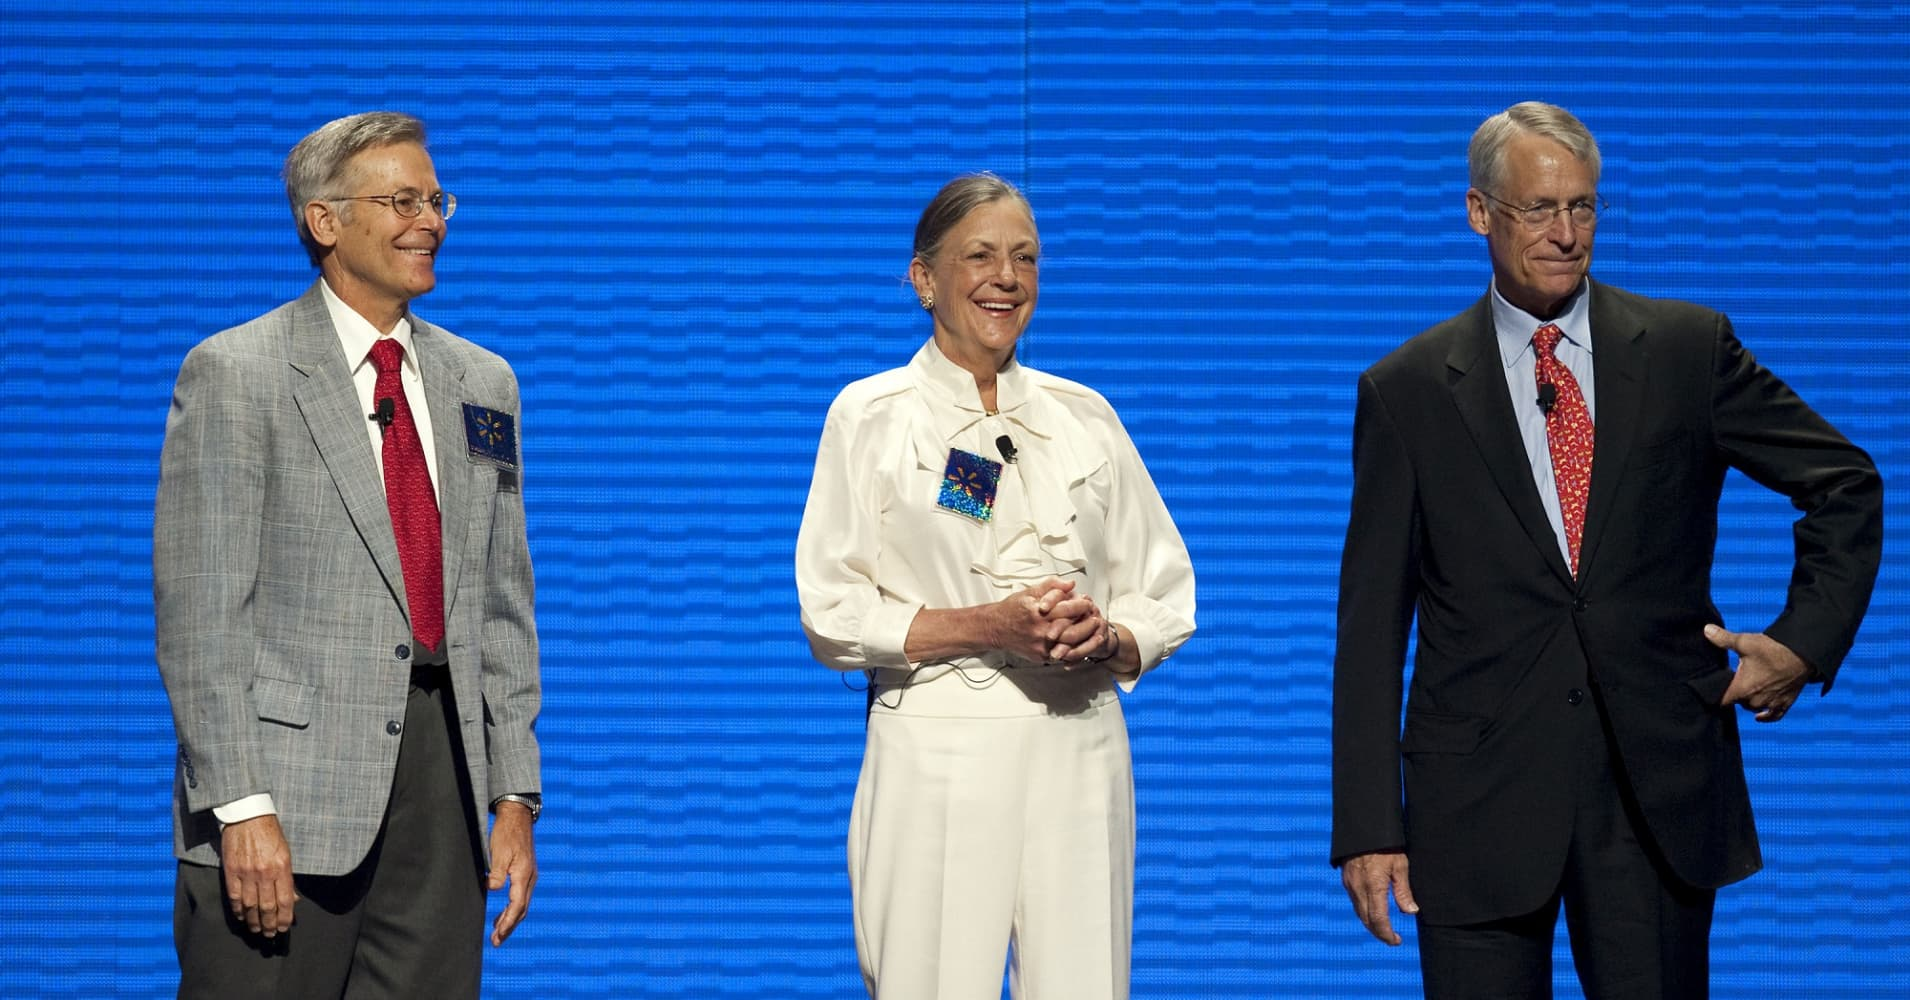 Rob Walton, chairman of Wal-Mart Stores Inc. and son of Wal-Mart founder Sam Walton, right, stands on stage with his siblings Alice Walton, center and Jim Walton, at the company's annual shareholders meeting in Fayetteville, Arkansas, U.S., on Friday, June 4, 2010.